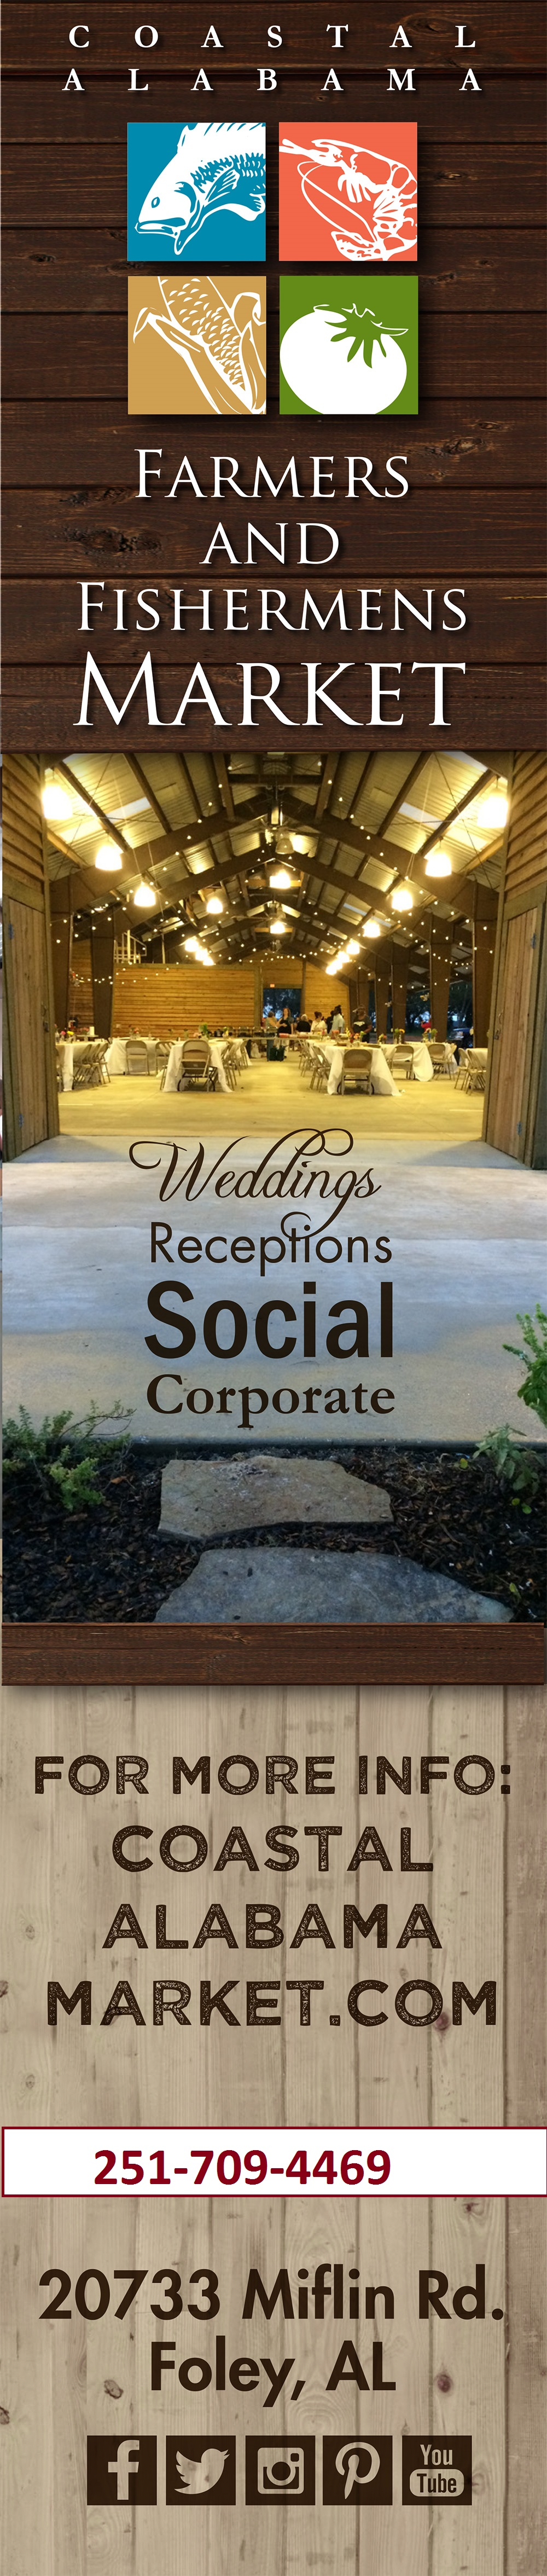 Rental Facilities for Weddings, Receptions, Social Gatherings and Corporate Events